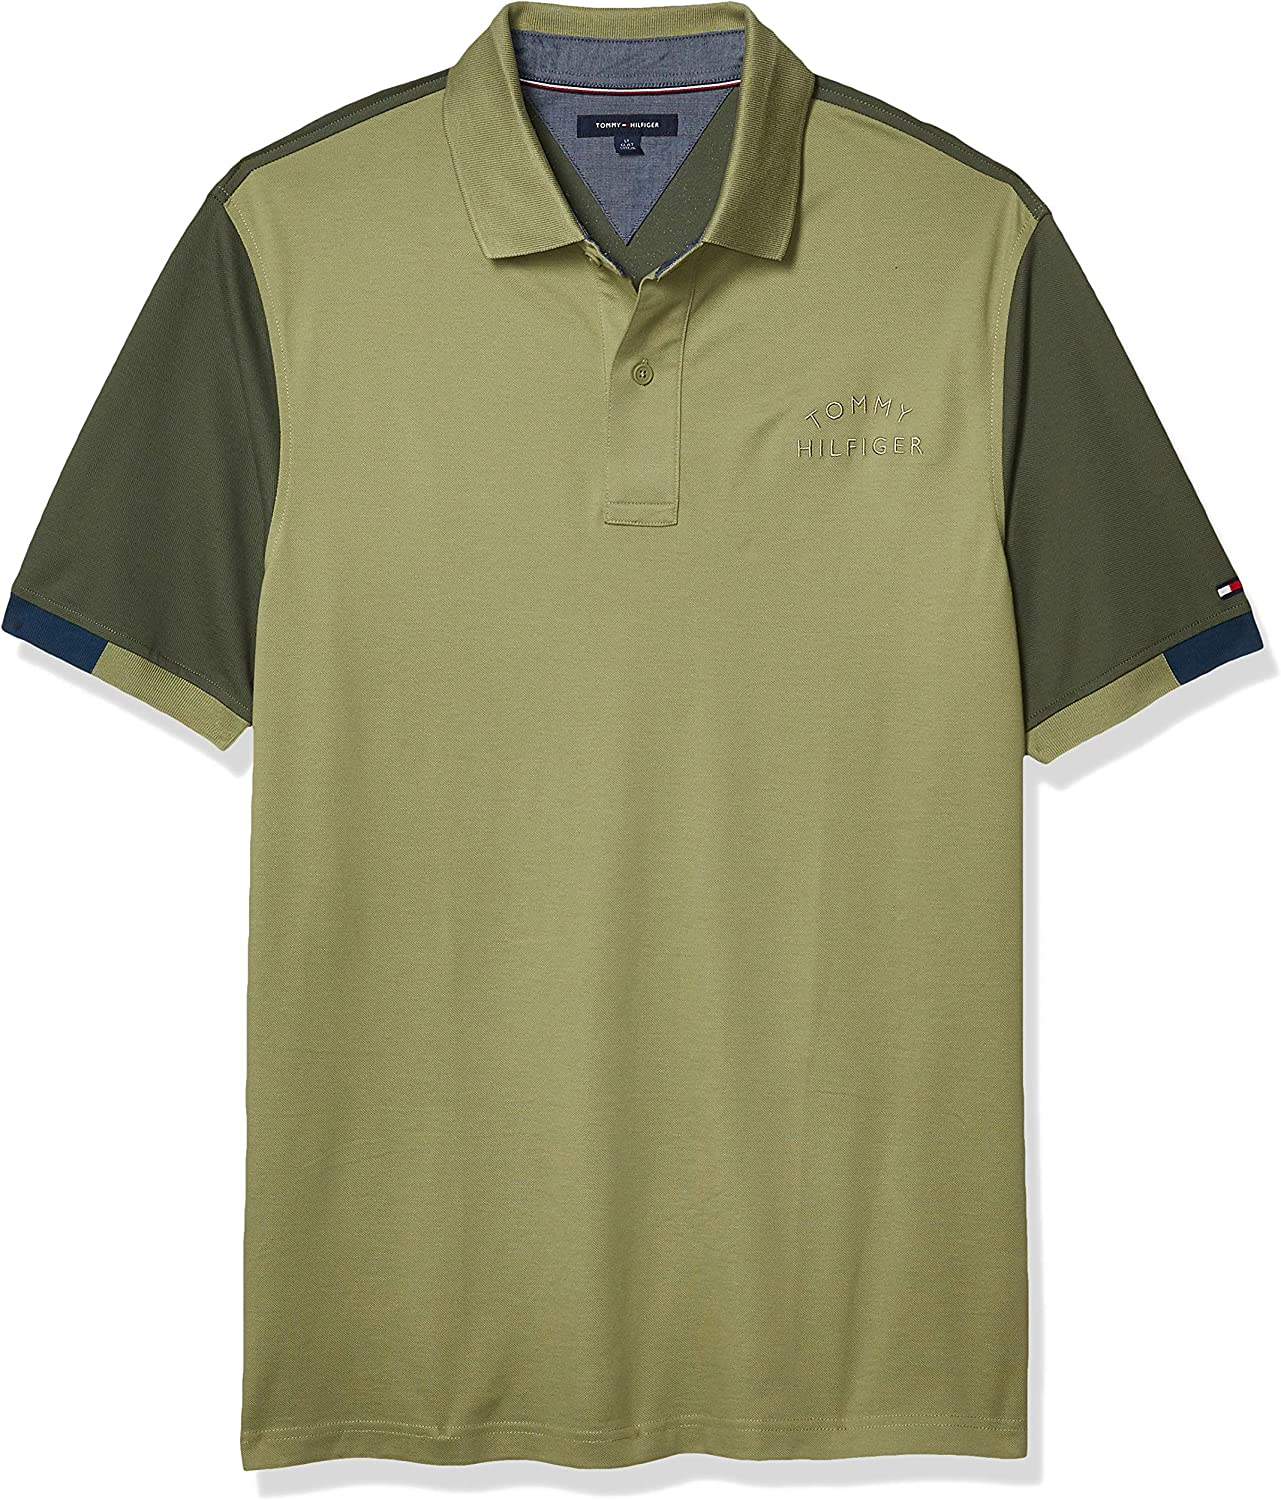 Tommy Hilfiger Men's Big and Tall Polo Shirt